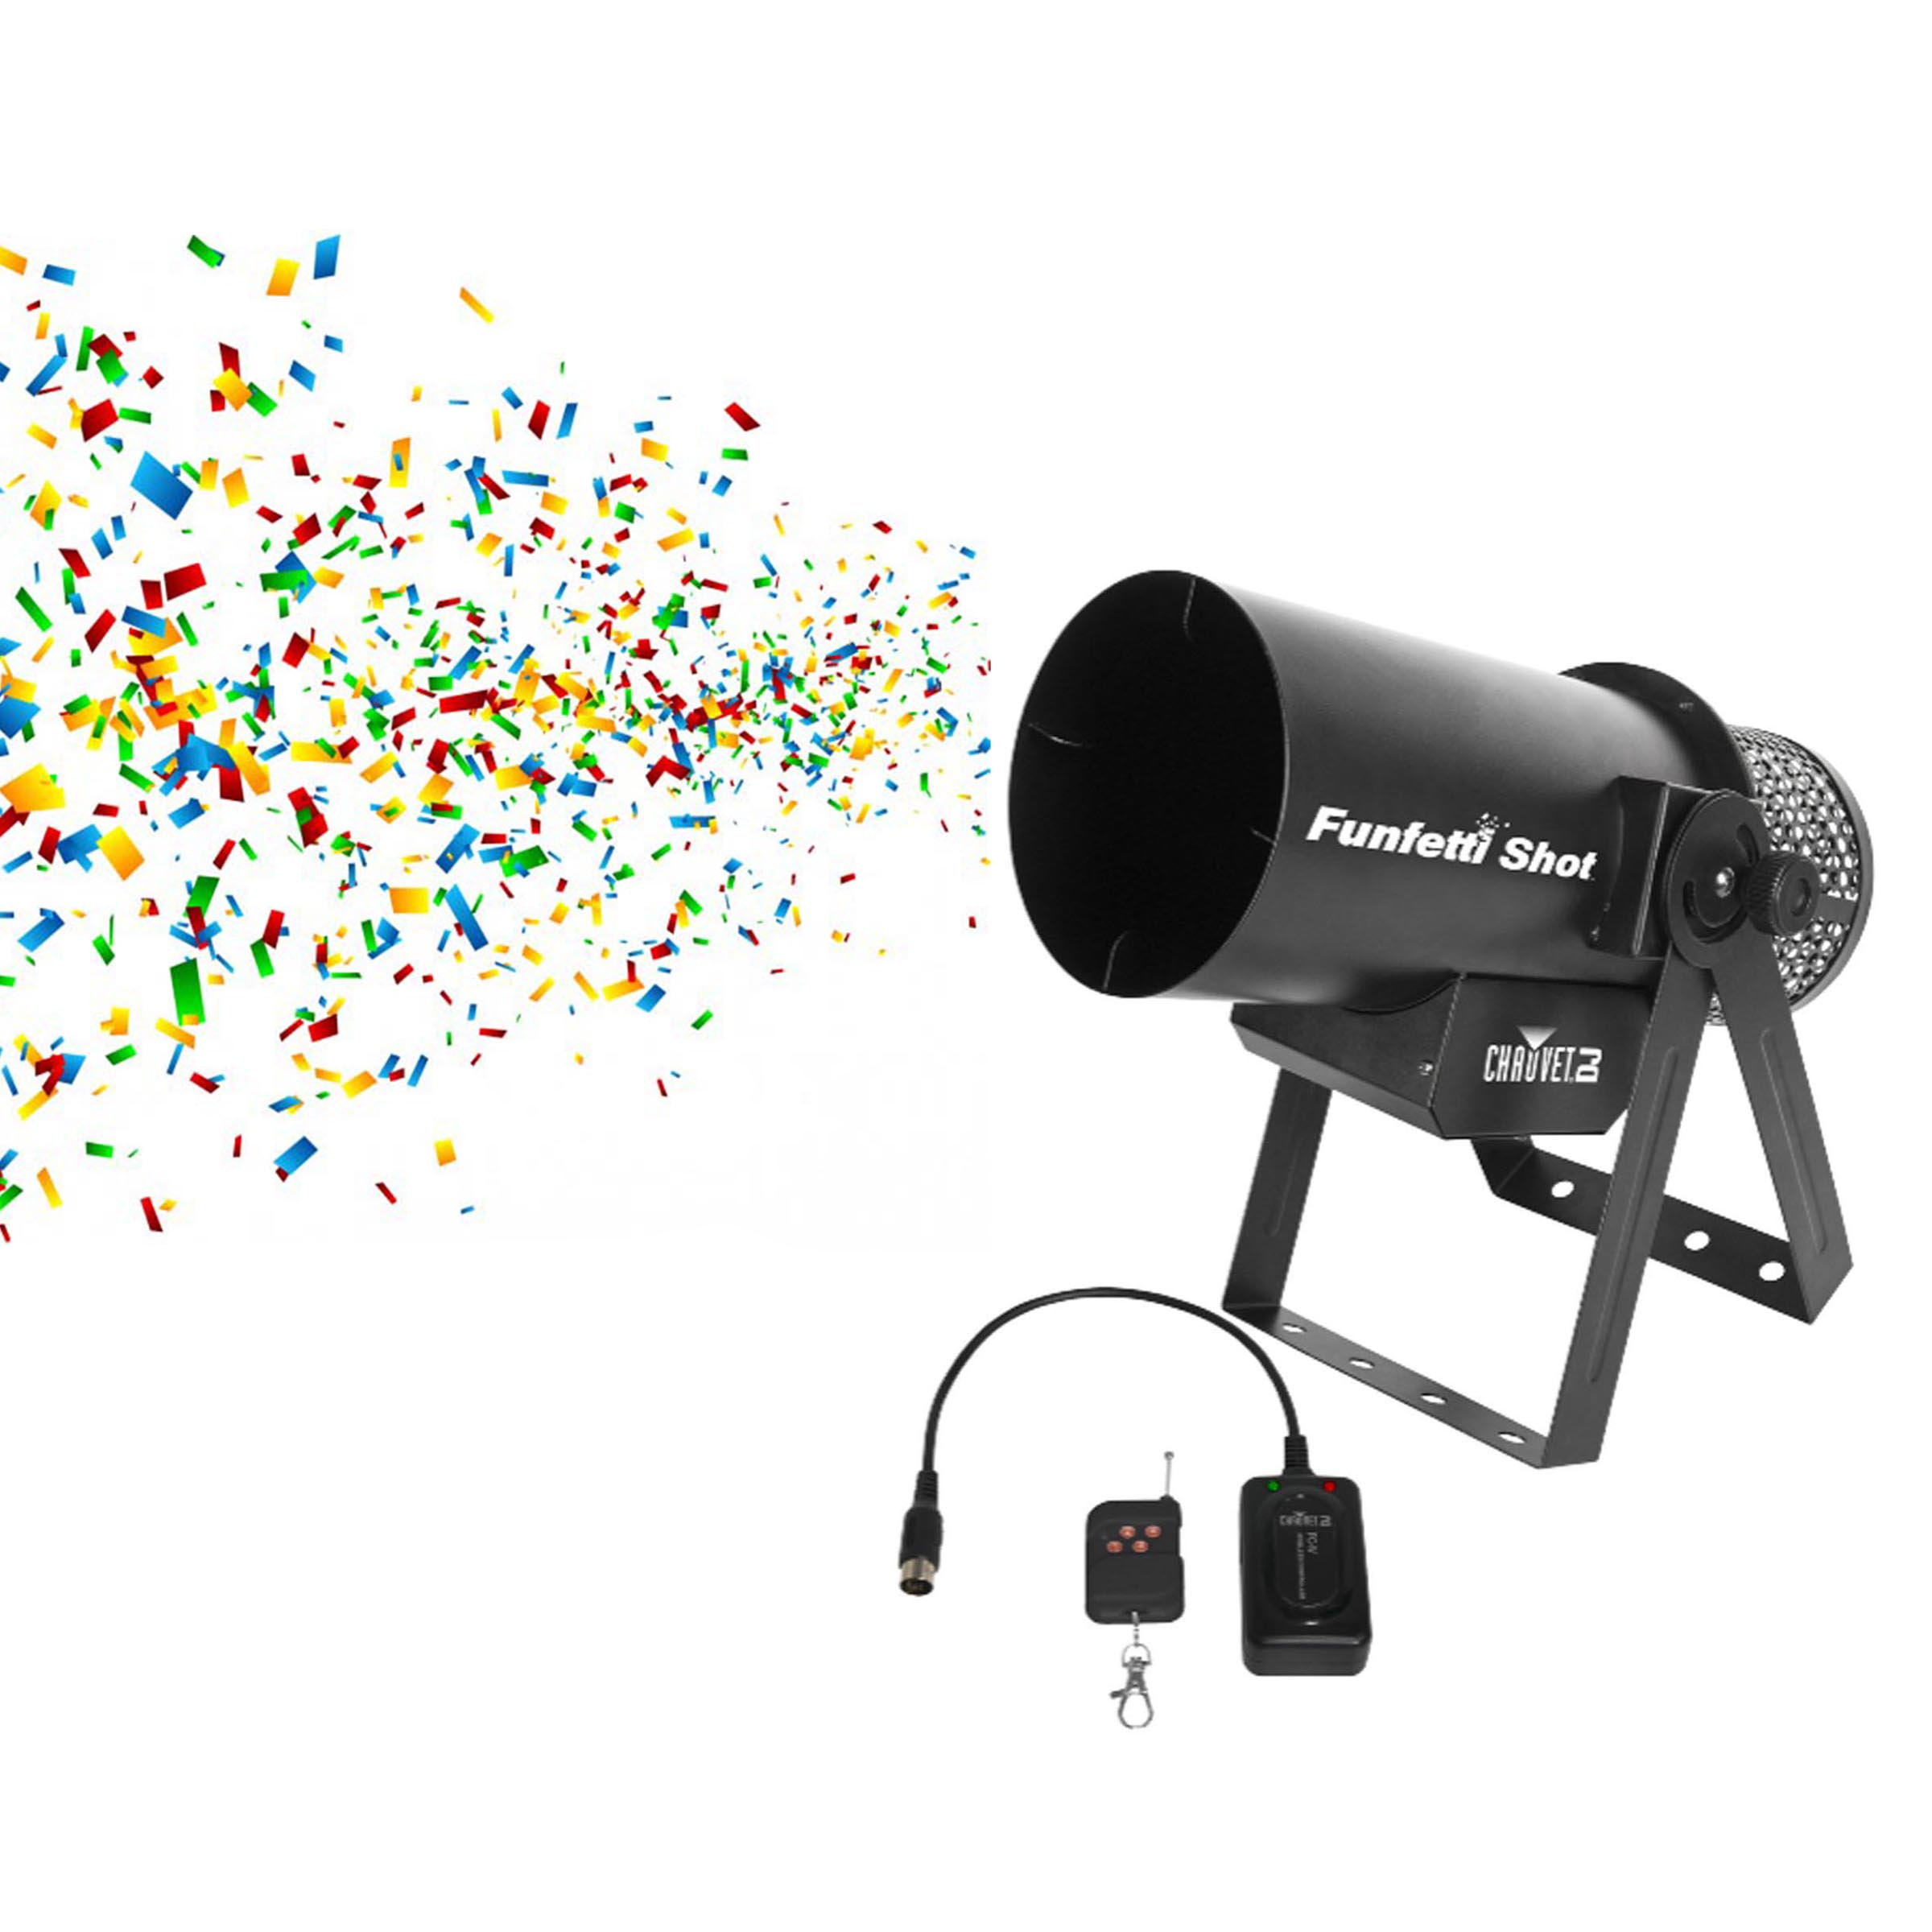 Chauvet DJ Funfetti Shot Professional Special Event Confetti Launcher and Remote